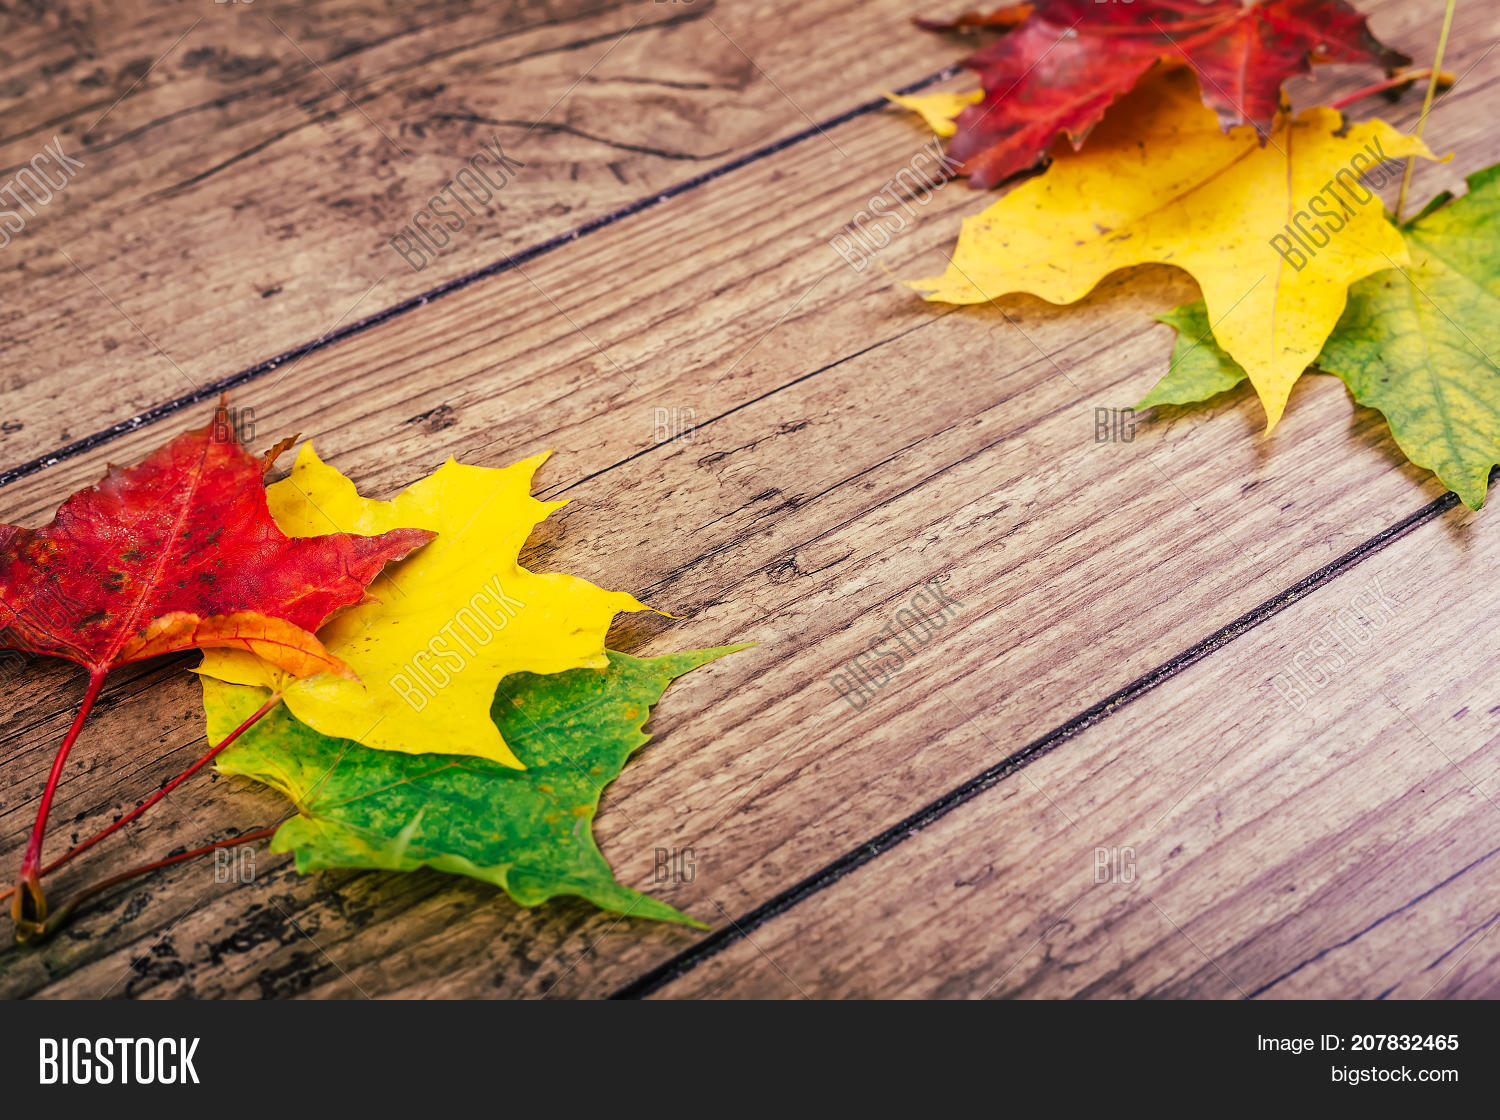 Autumn Background With Colorful Fall Maple Leaves On Rustic Wooden Table Life Cycle Of